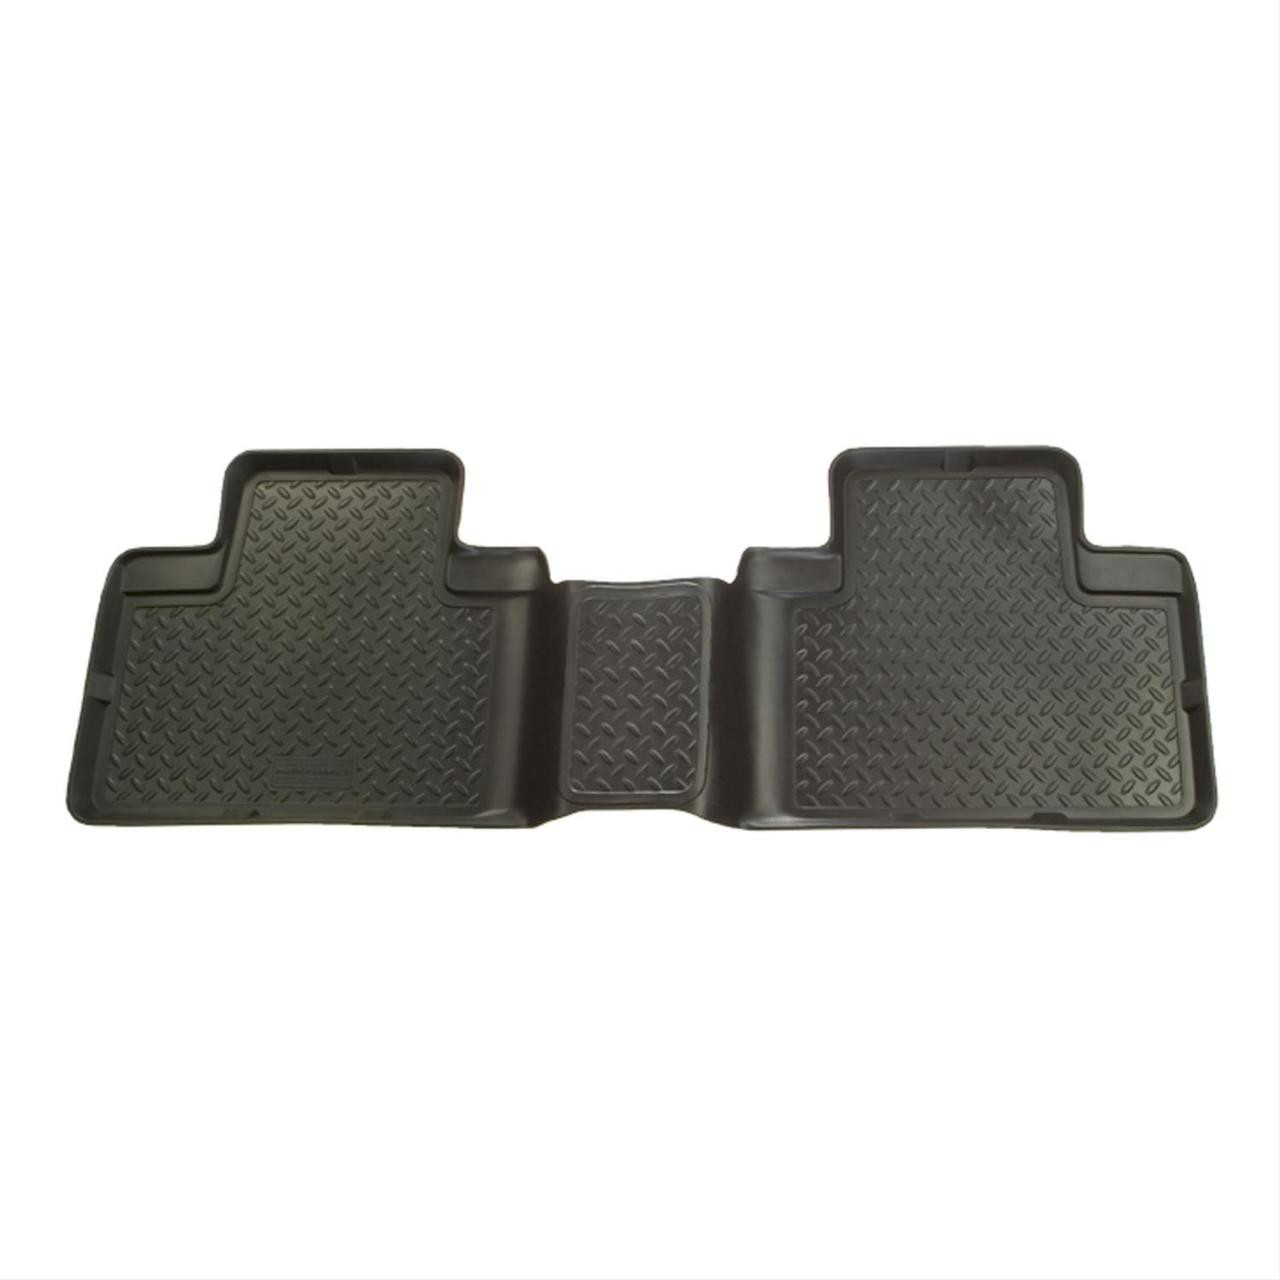 00-05 EXCURSION 2ND SEAT FLOOR LINER BLACK